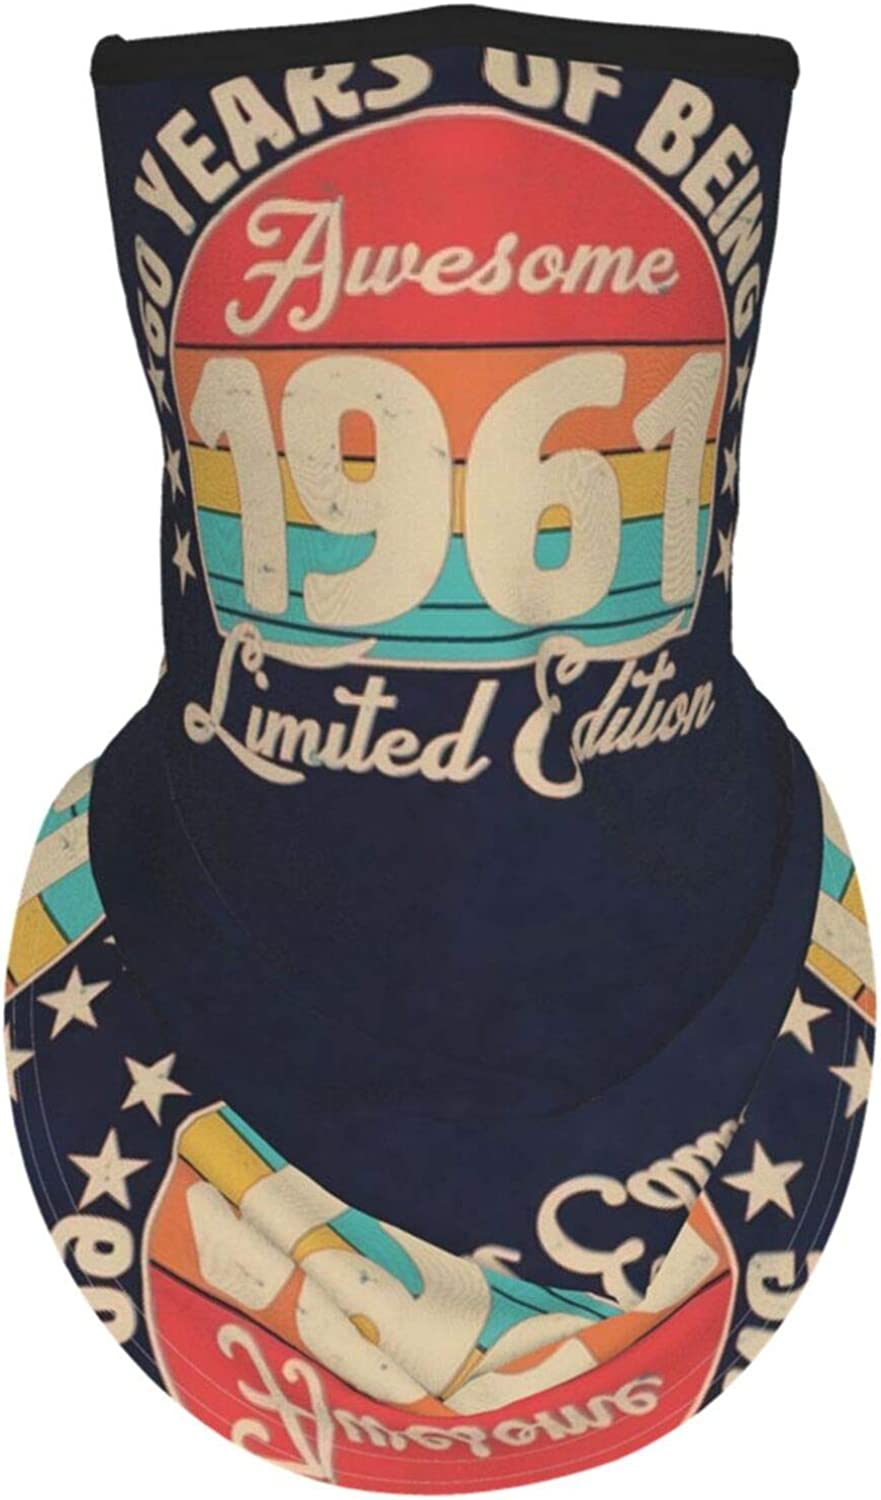 Ear Hangers Face Balaclava Awesome Limited Edition 1961 Birthday Vintage Navy Protective Cover Wristband Bandanas Neck Gaiter Dust-Proof,Anti-Pungent Gas,Washable